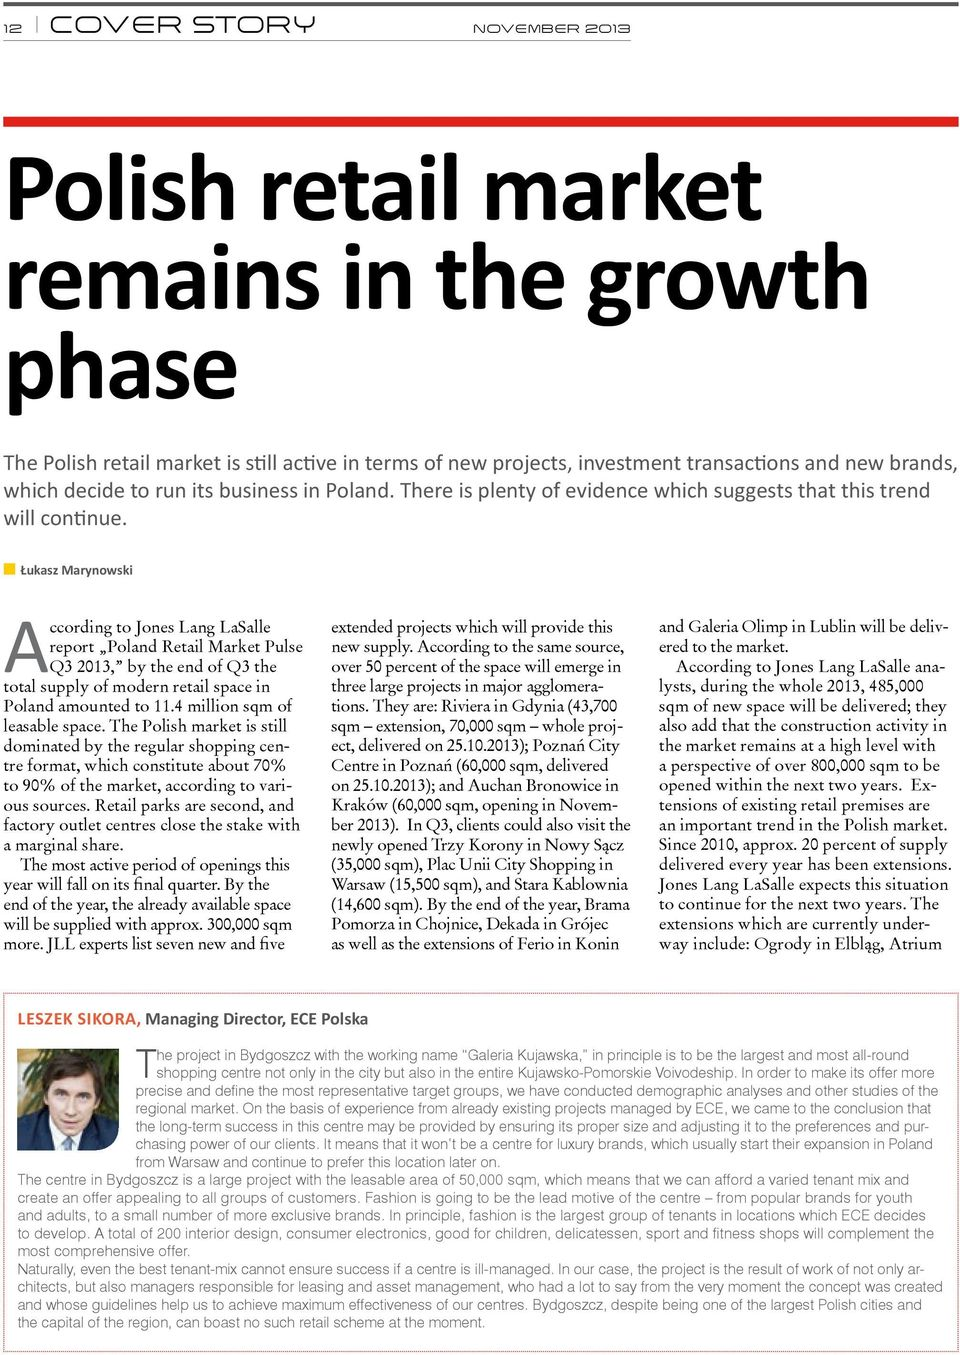 Łukasz Marynowski According to Jones Lang LaSalle report Poland Retail Market Pulse Q3 2013, by the end of Q3 the total supply of modern retail space in Poland amounted to 11.